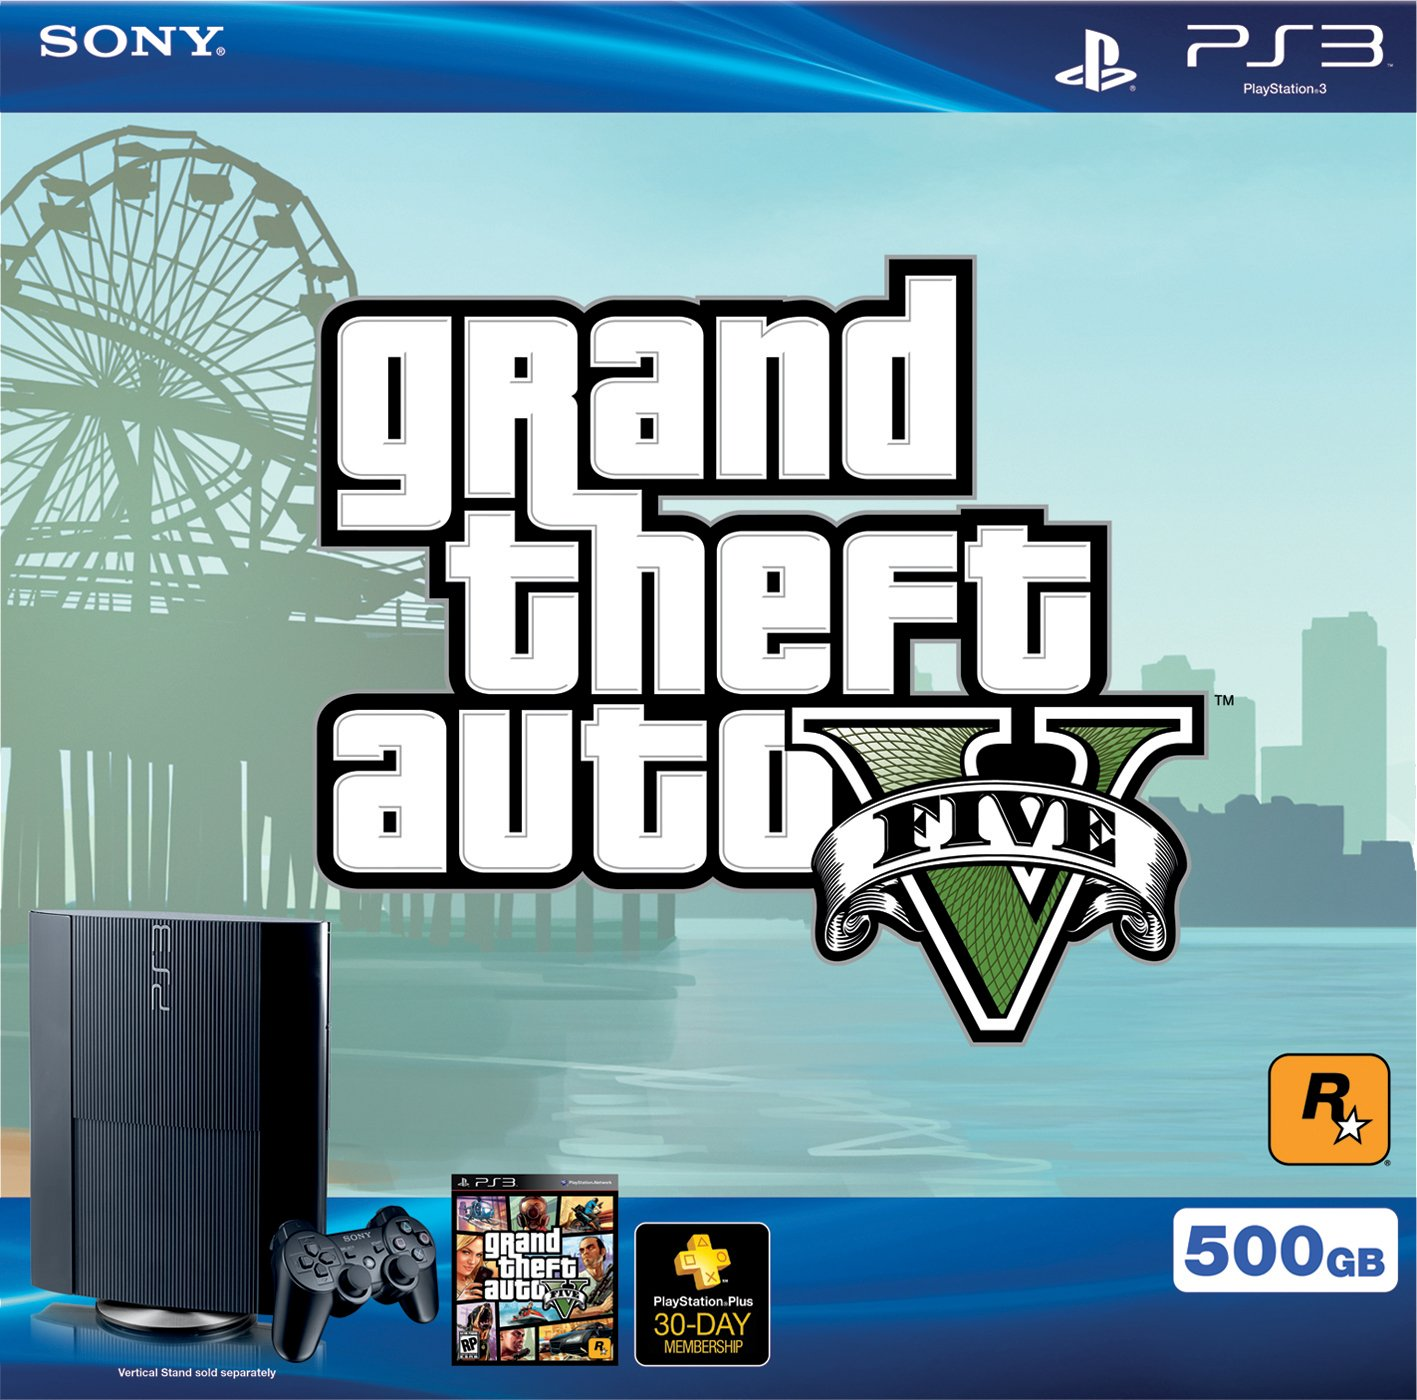 PS3 500 GB Grand Theft Auto V Bundle by Sony